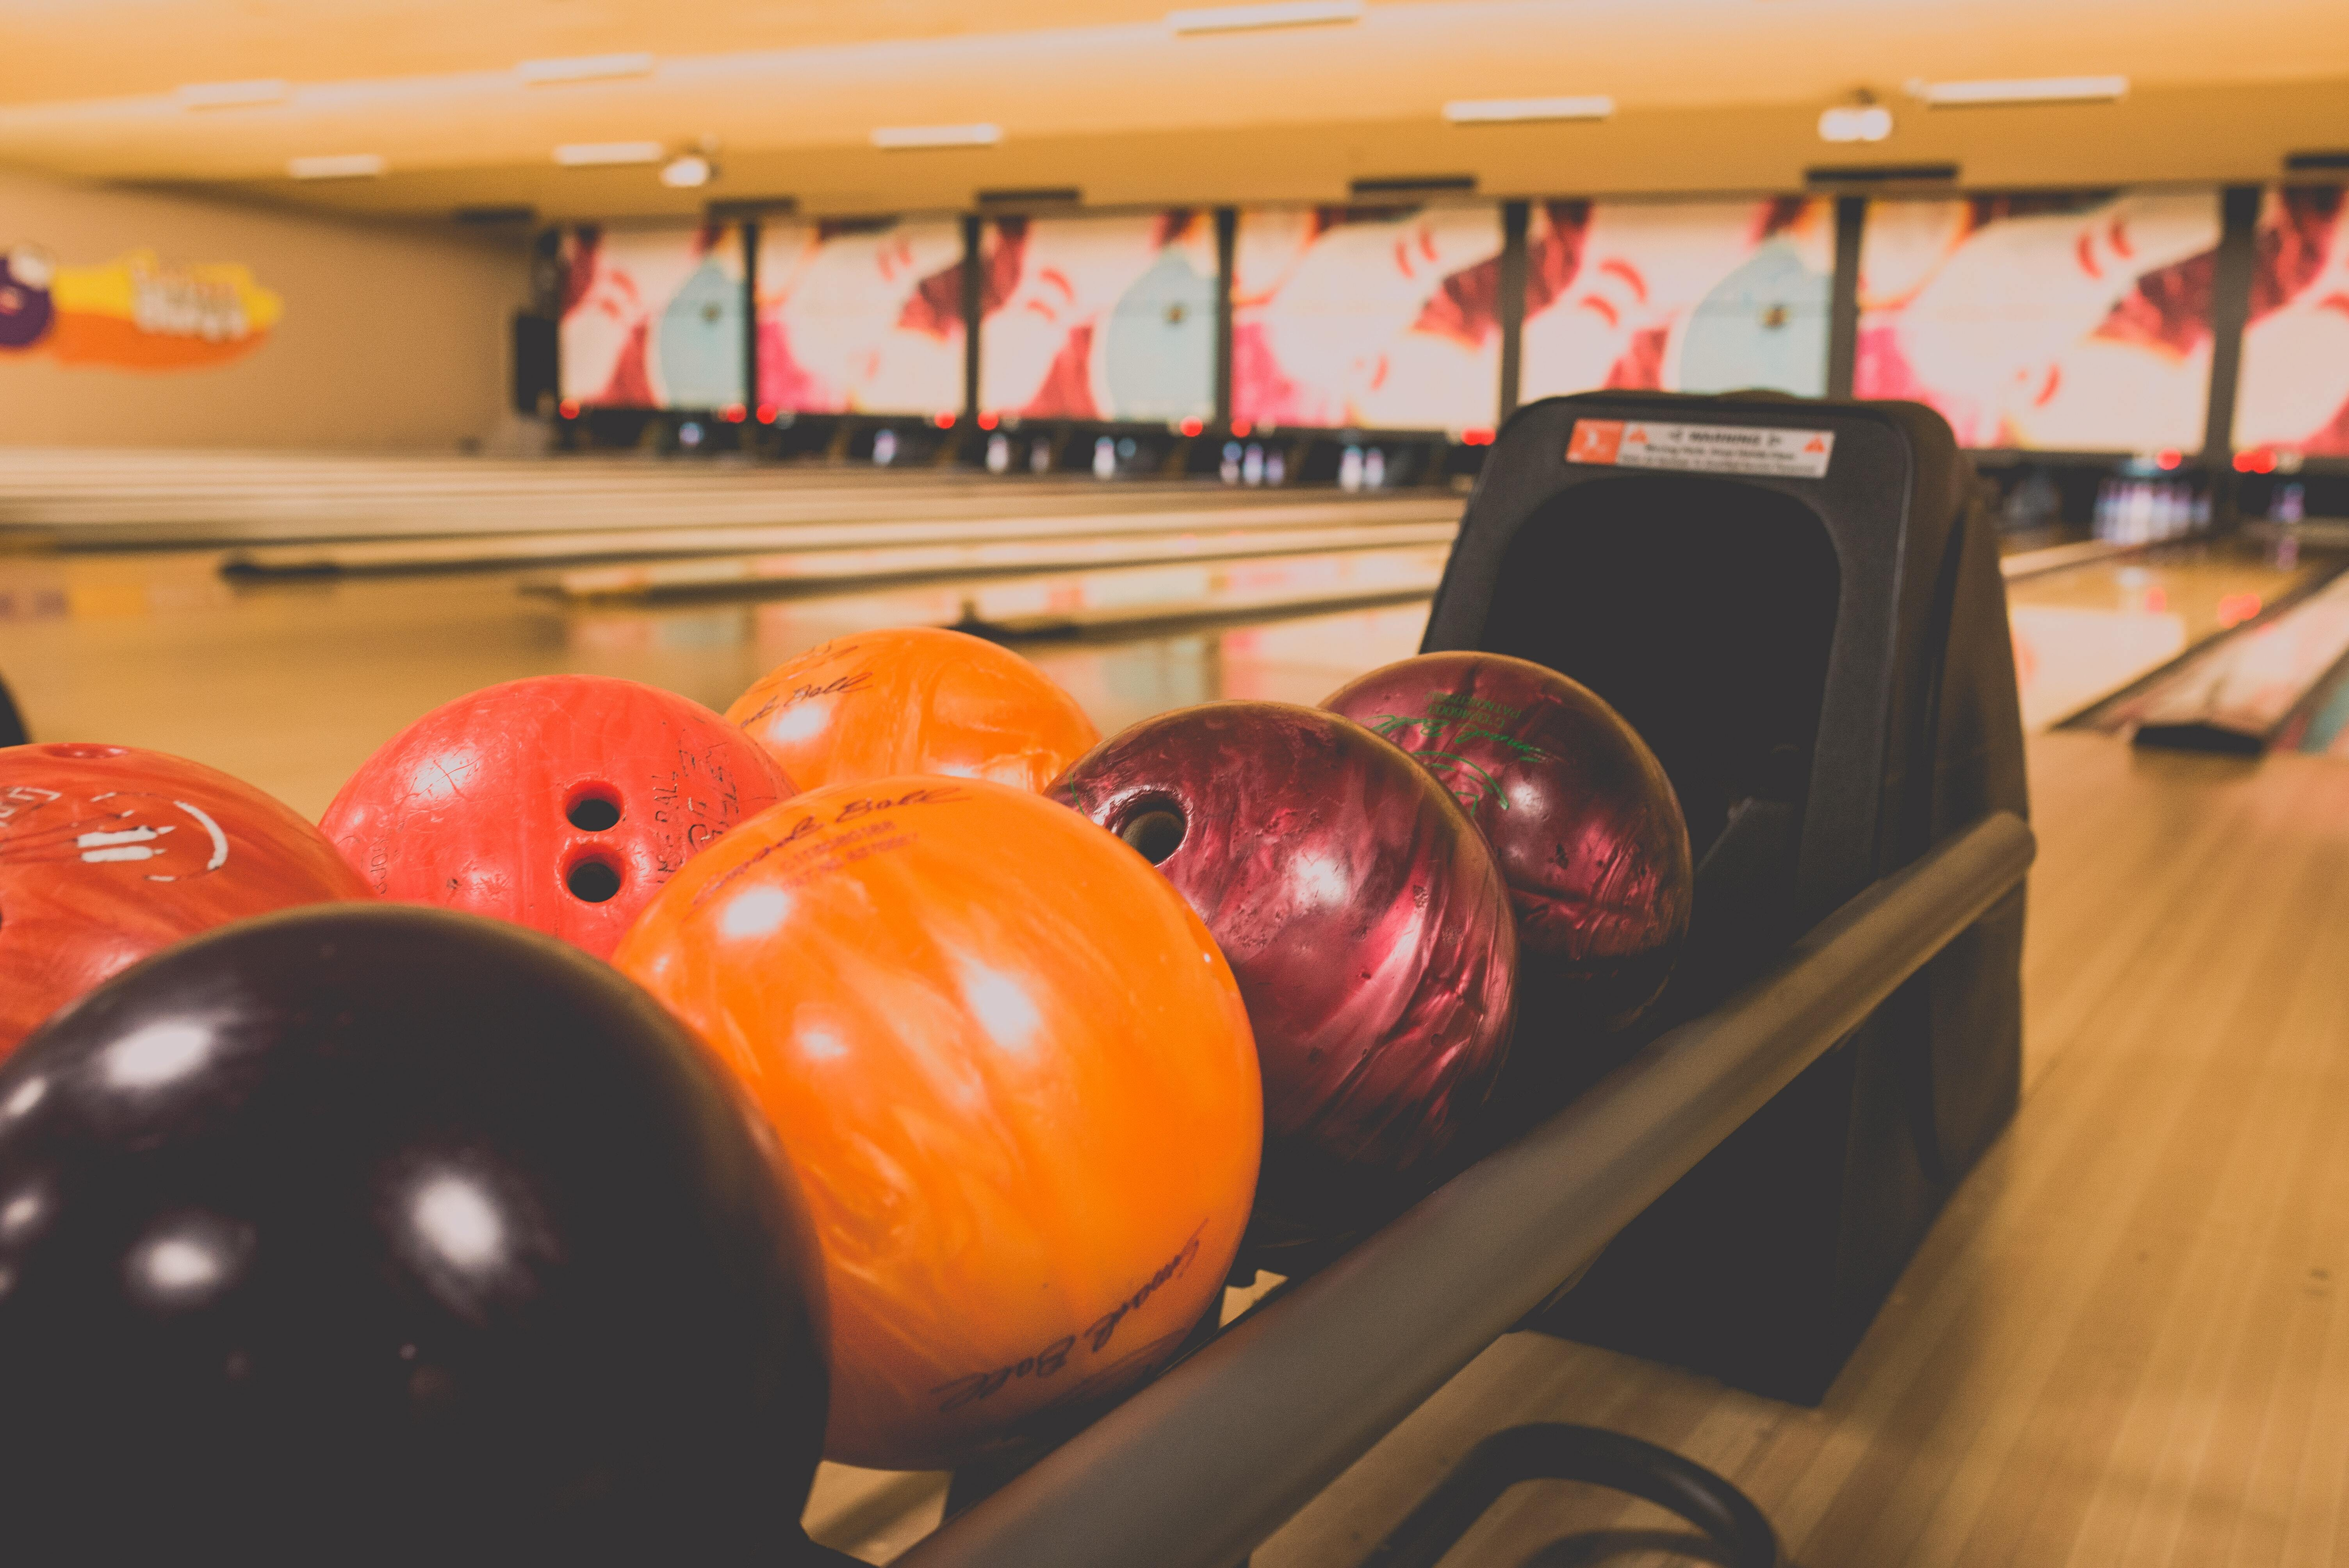 Youth Ministry Bowling Night Permission Slip